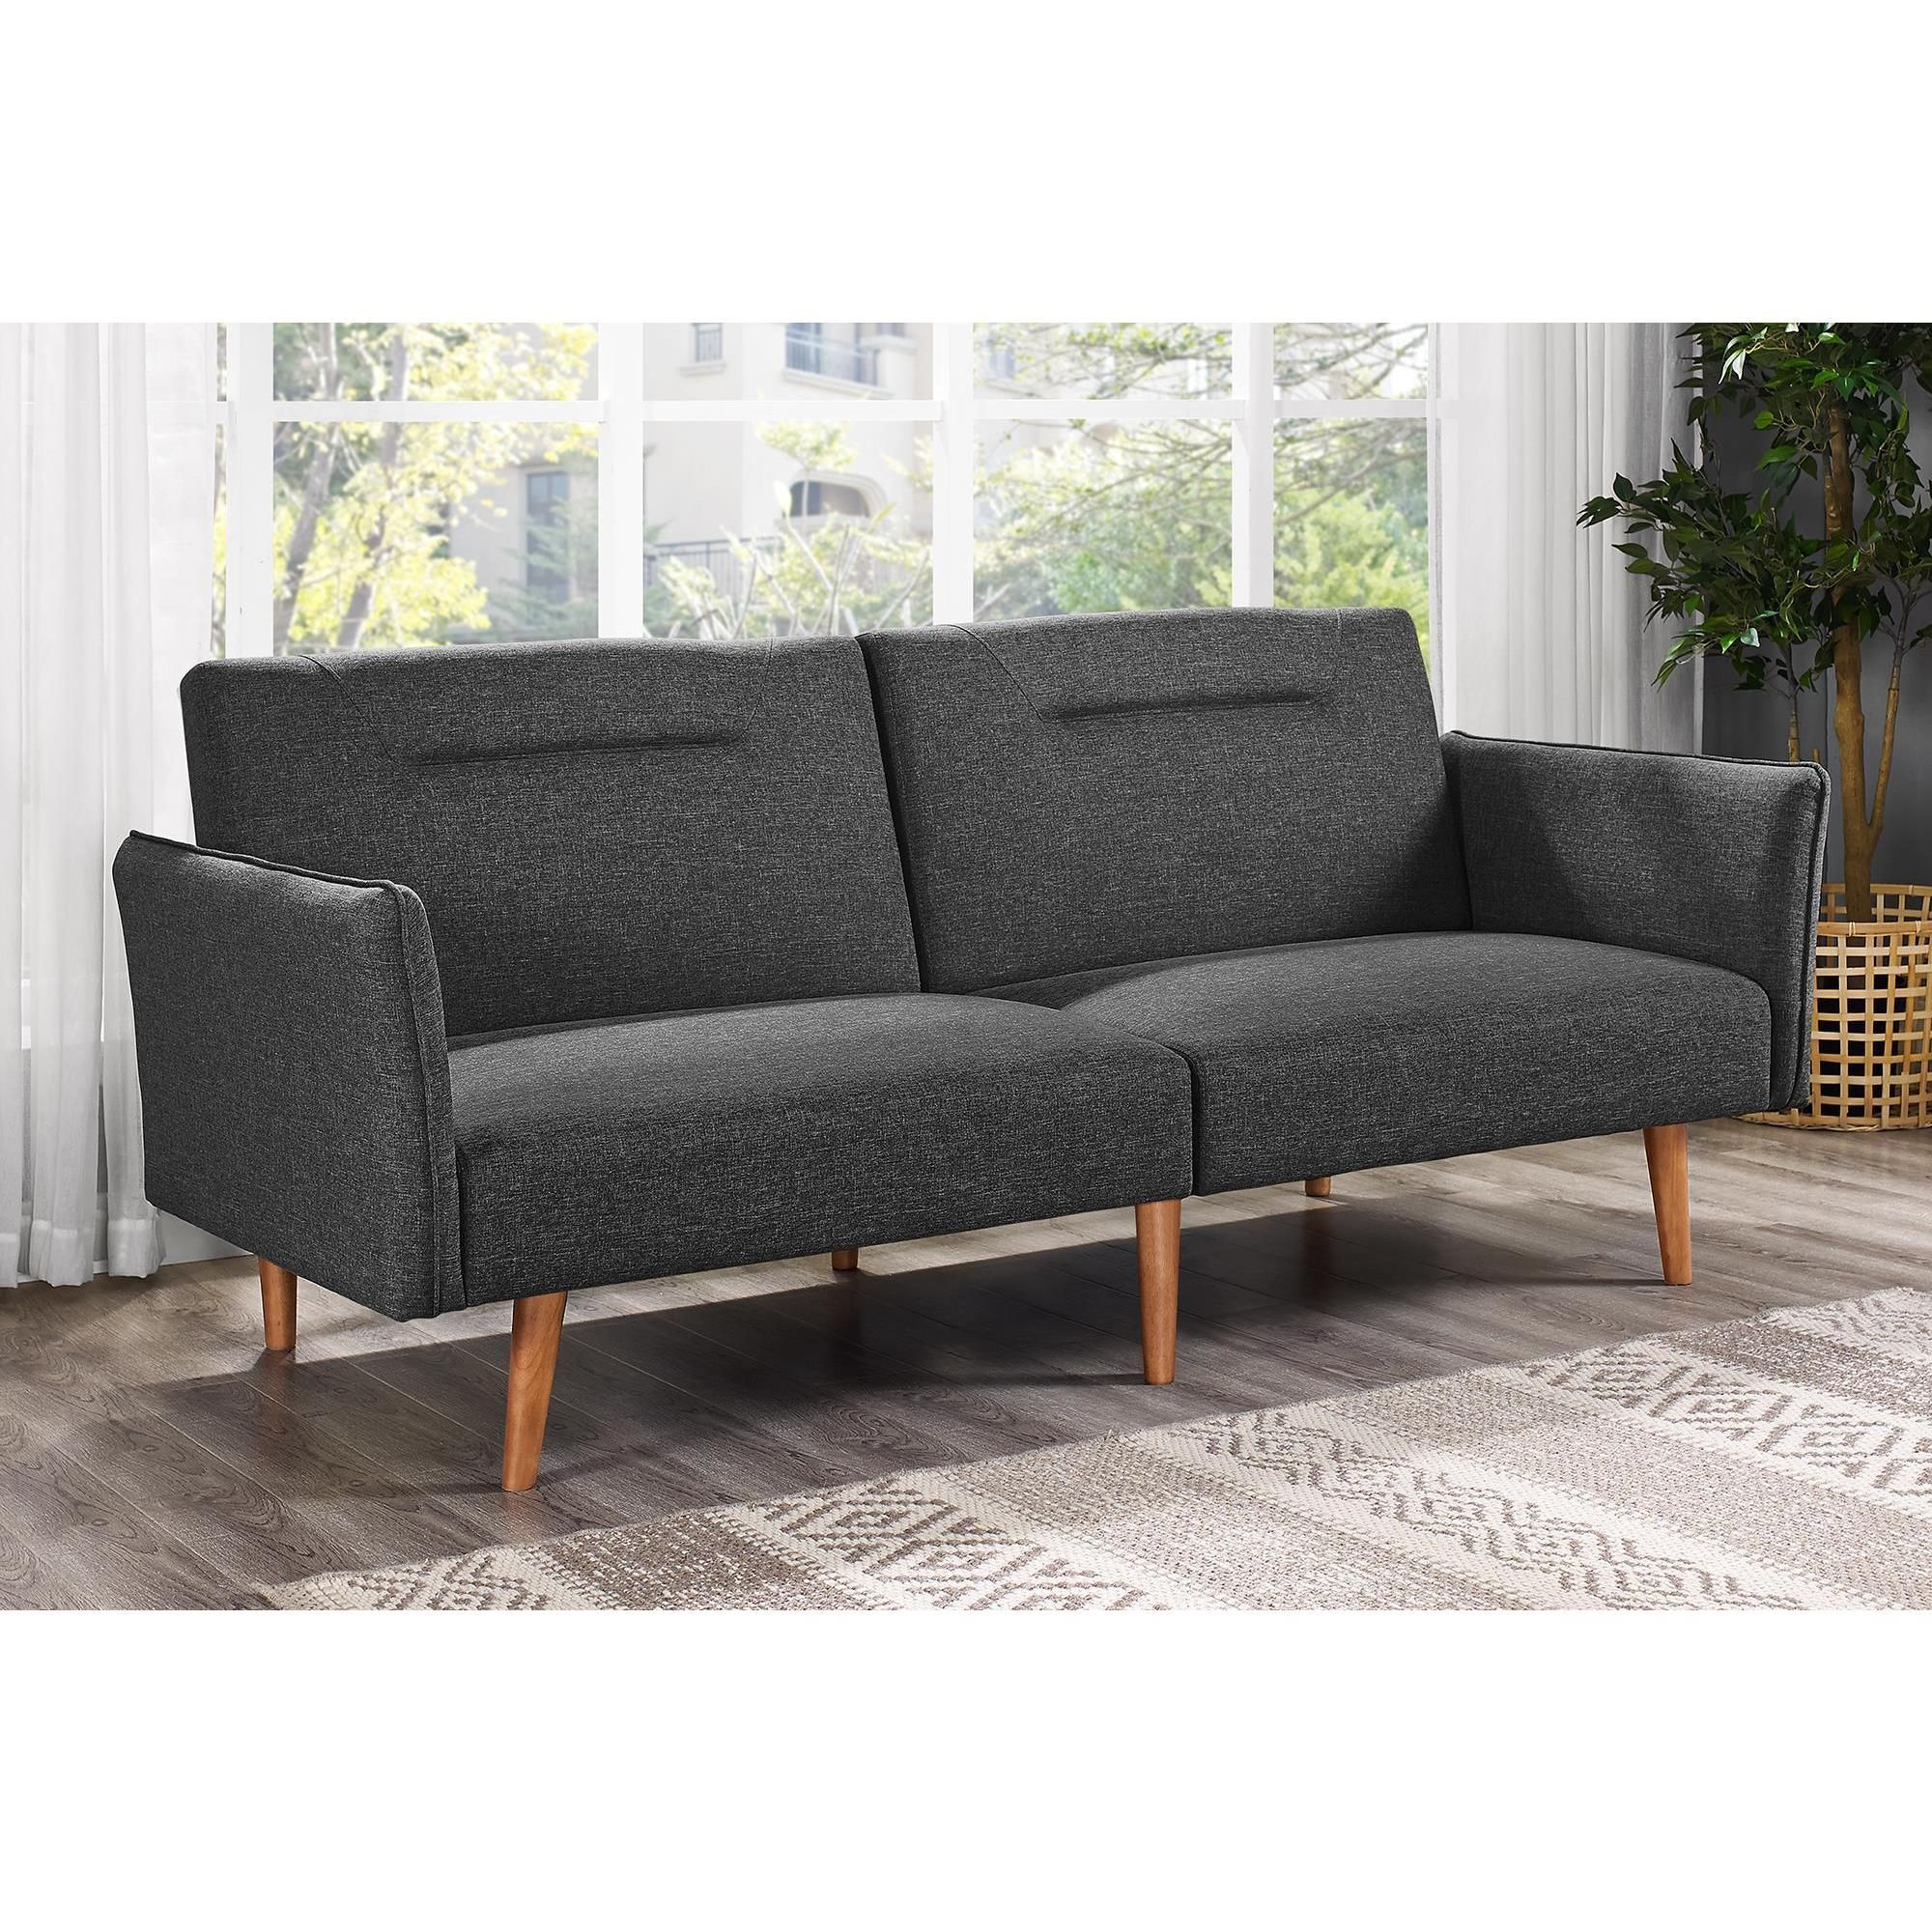 Dhp B Futon Boasting Both Form And Function The Means Entertaining Guests Is As Stylish It Simple This Two Position Adjule